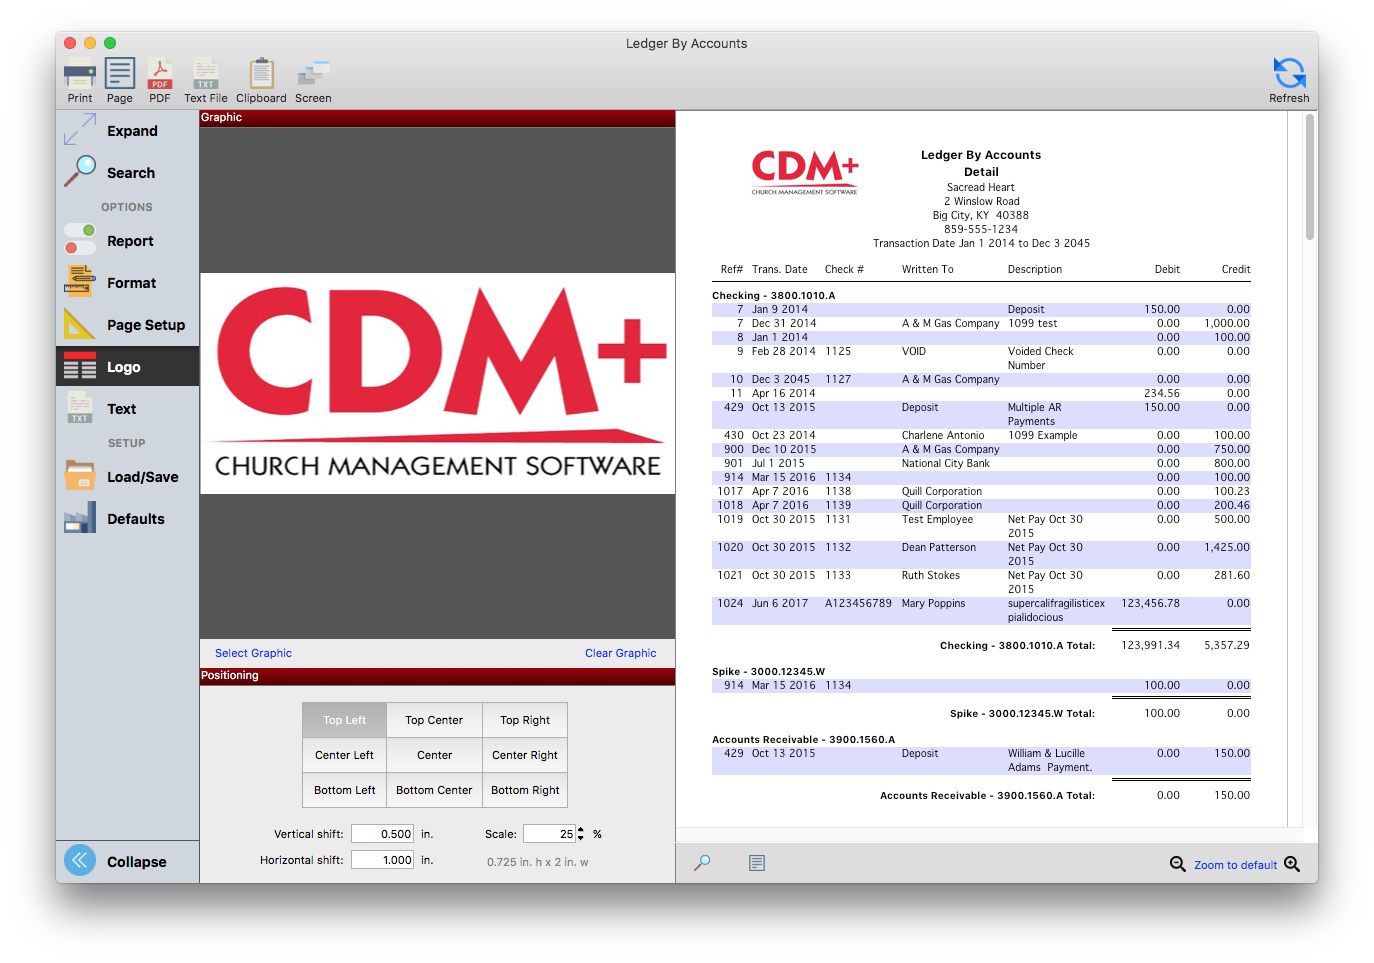 Logos can now be added to most reports in CDM+